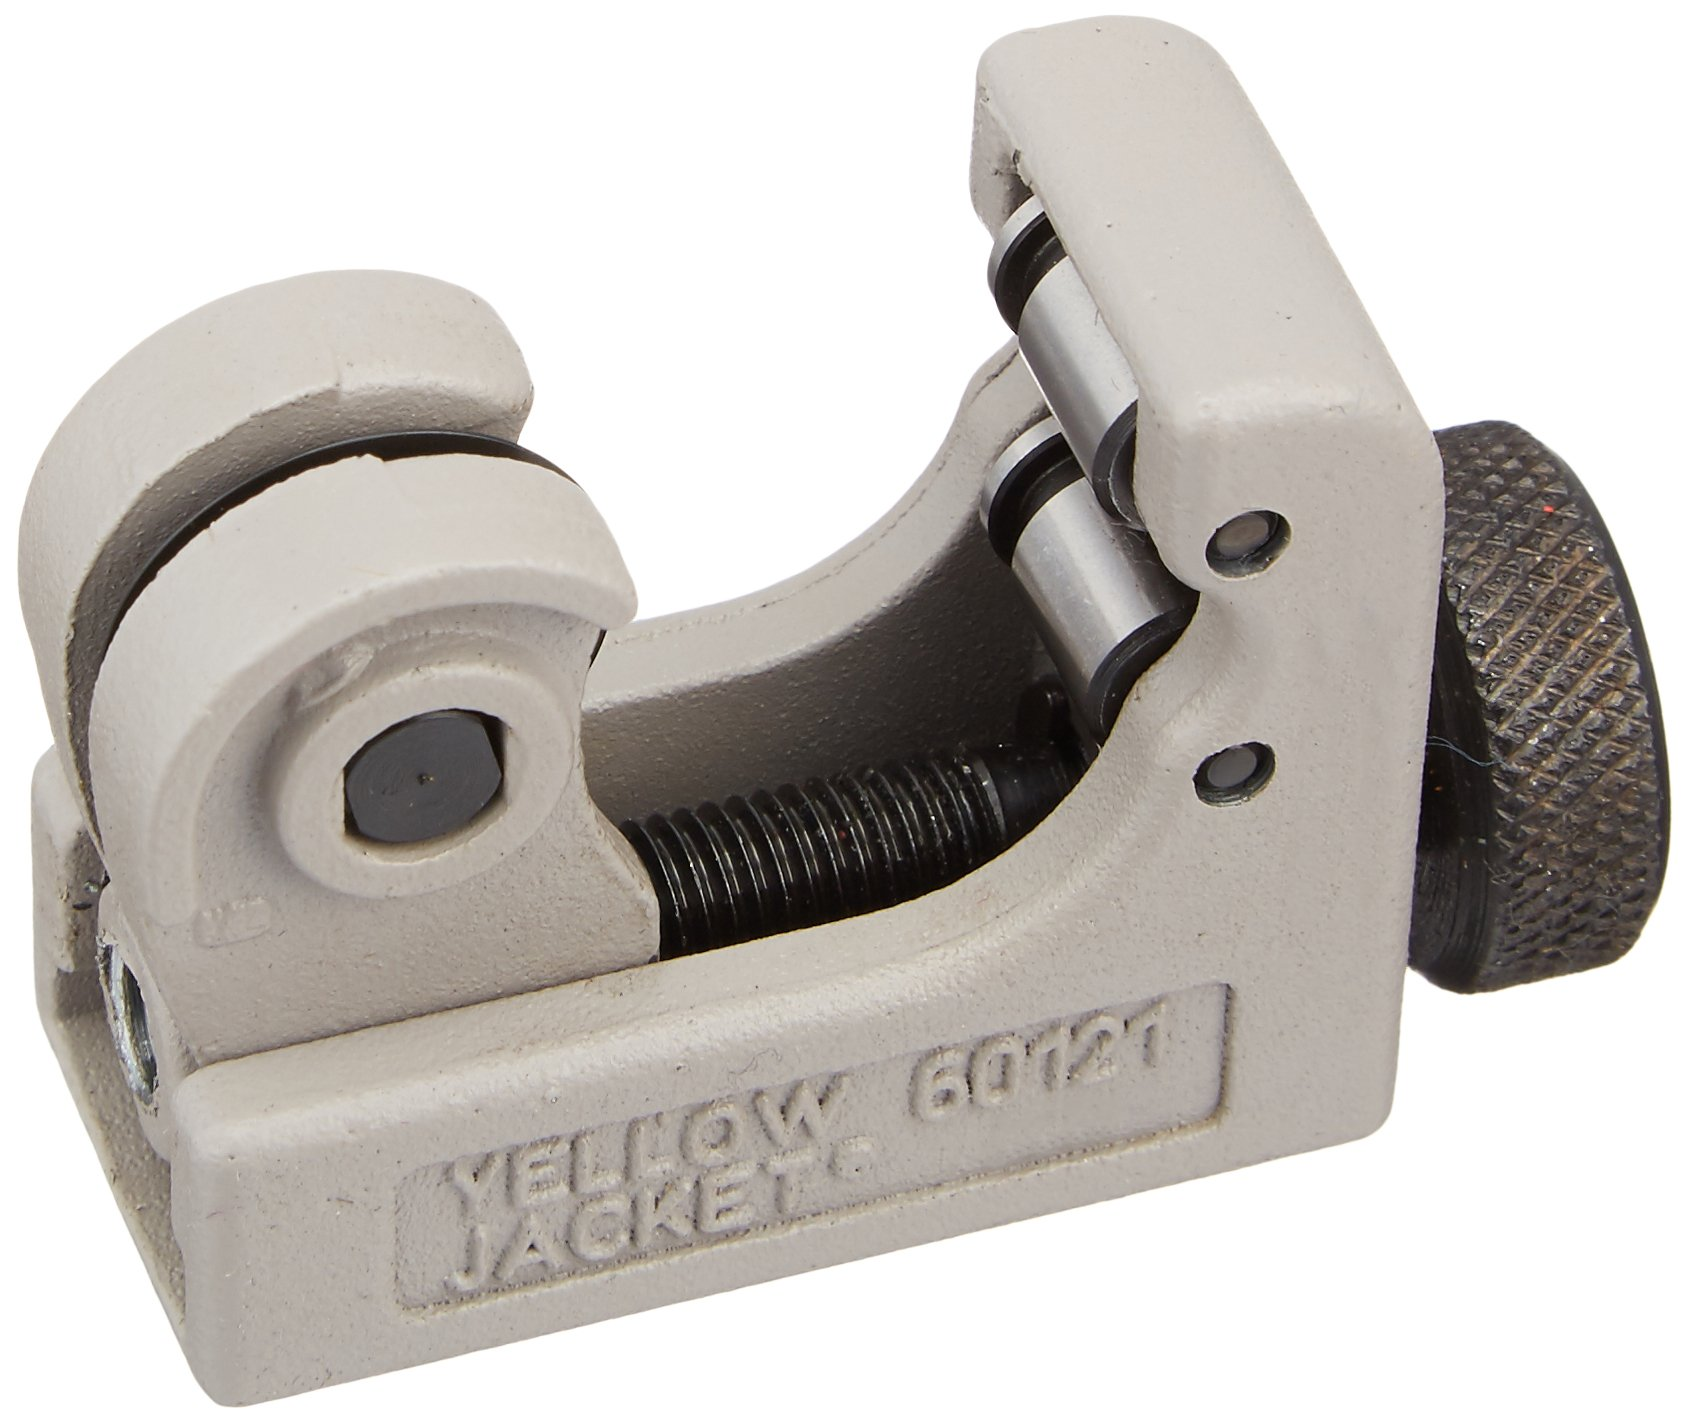 Yellow Jacket 60121 1/4 to 7/8'' Large Mini-Tube Cutter